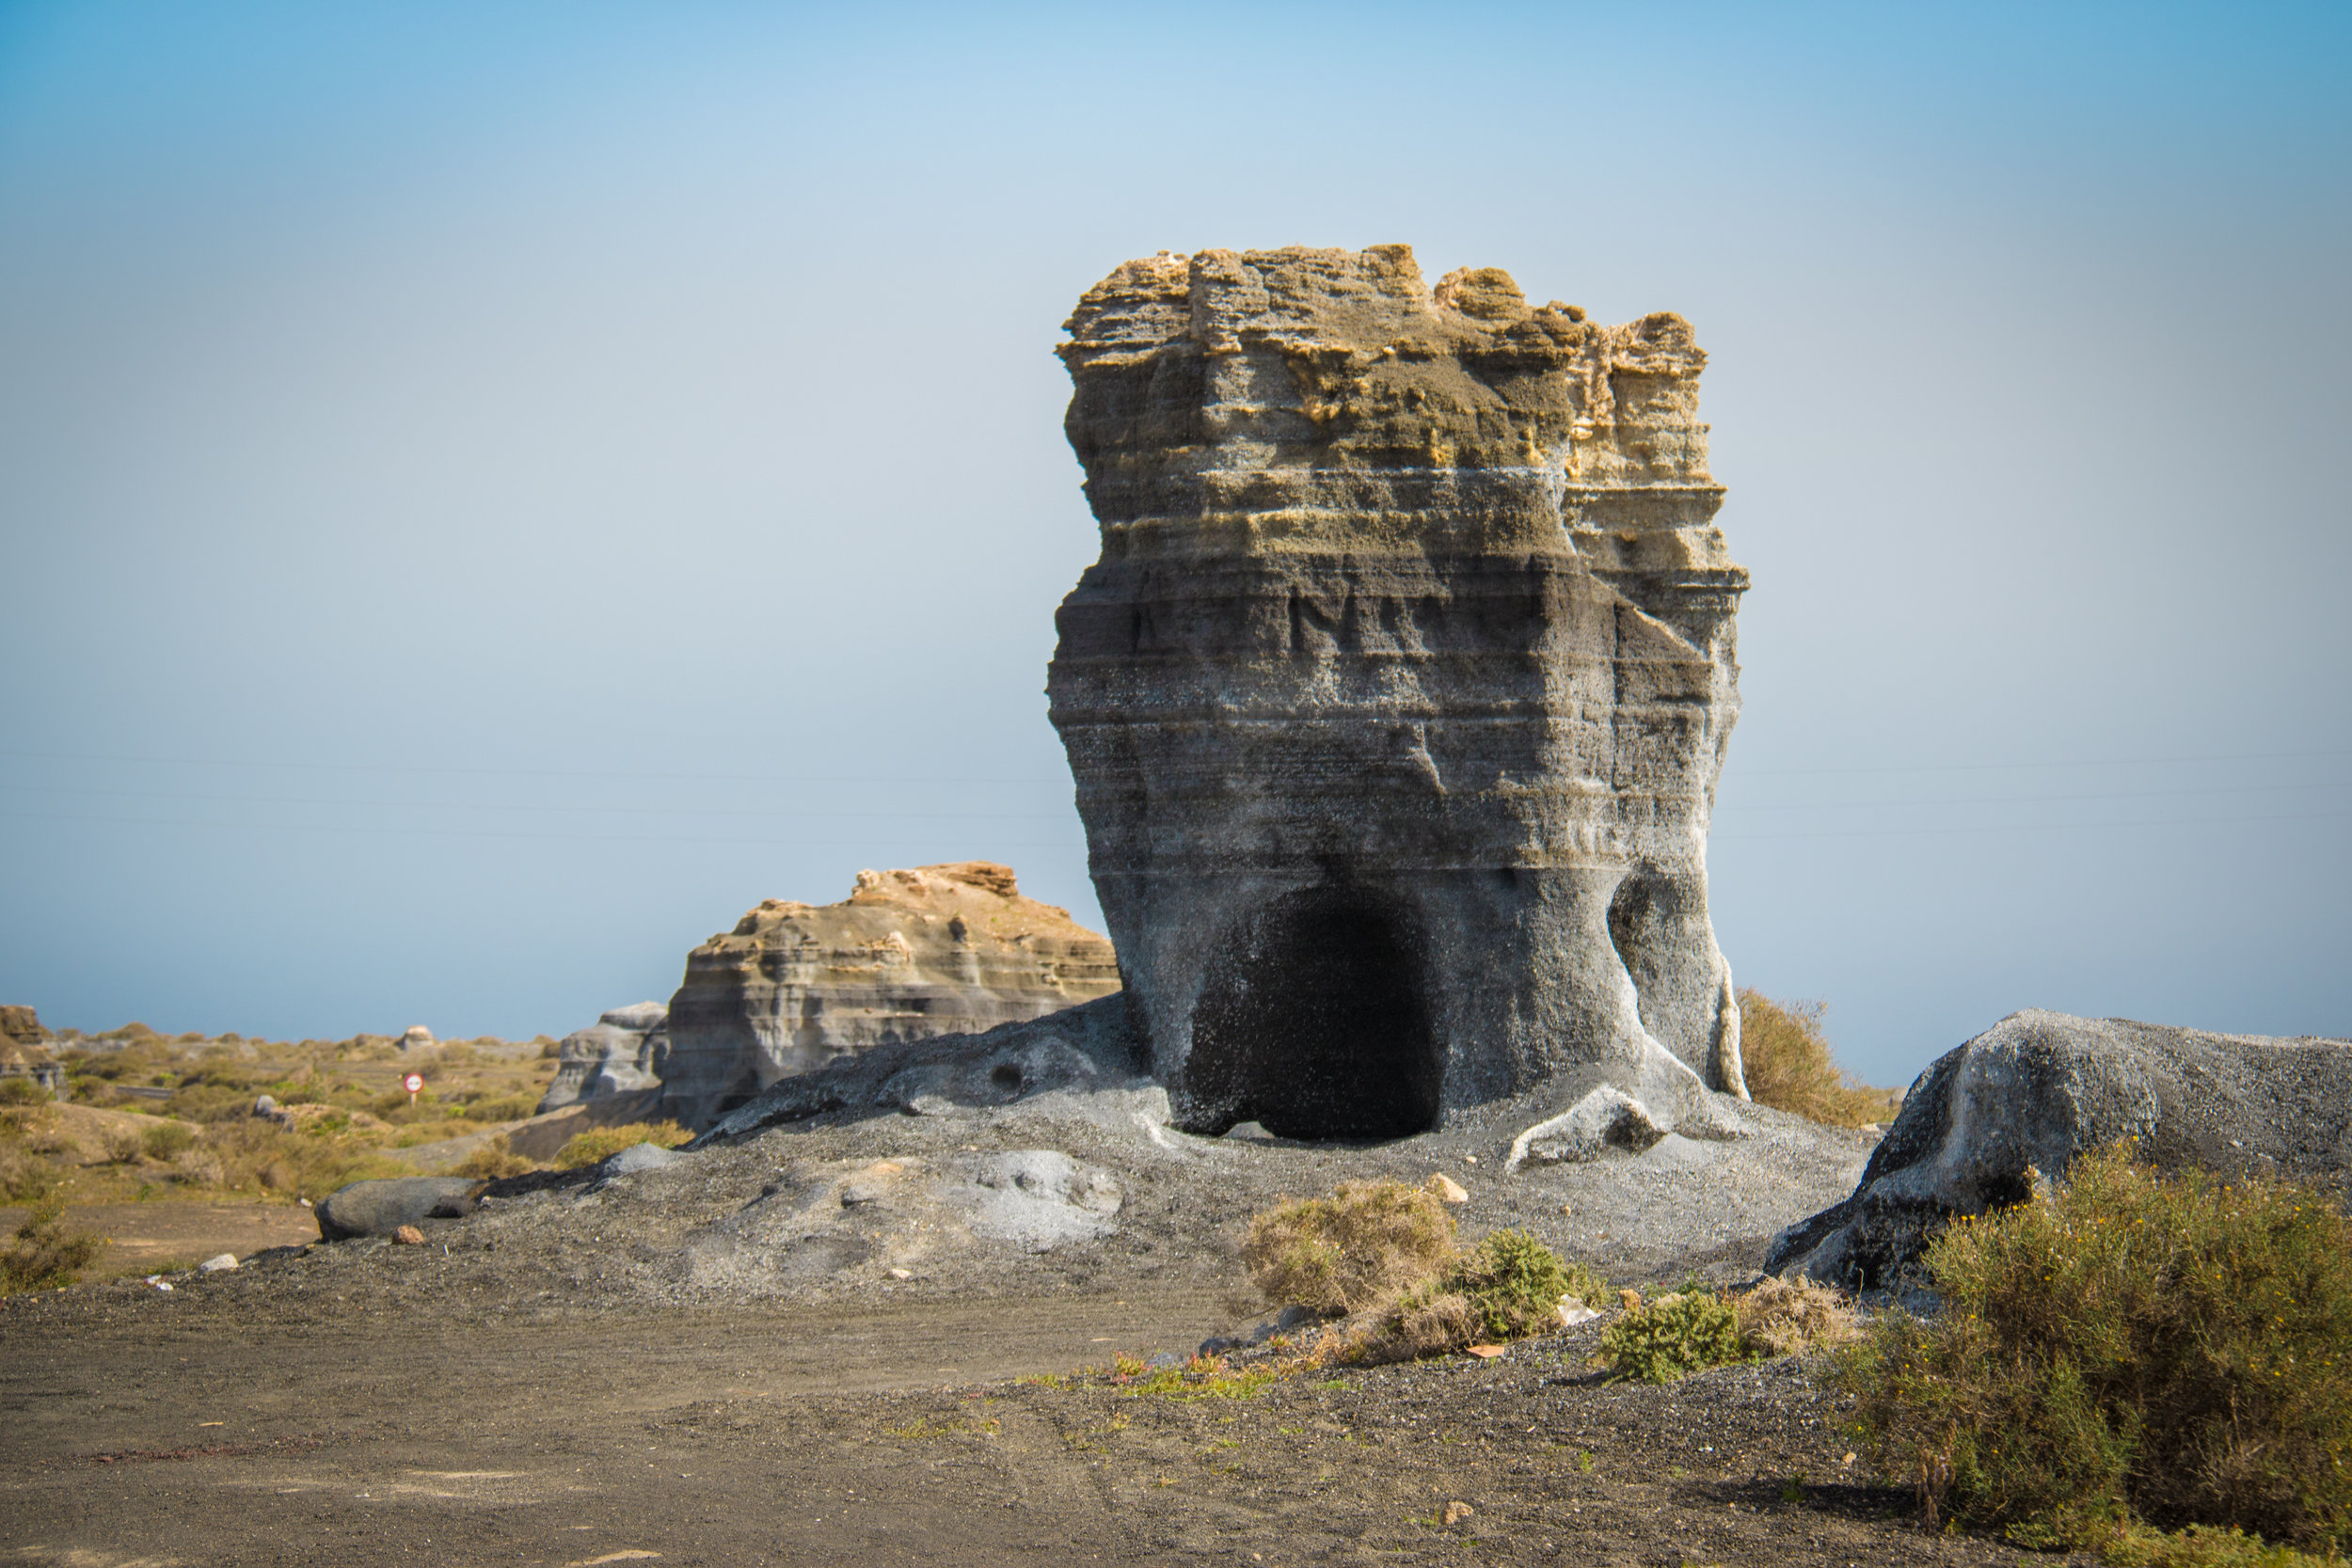 Just love these kind of volcanic sculptures right next to the road